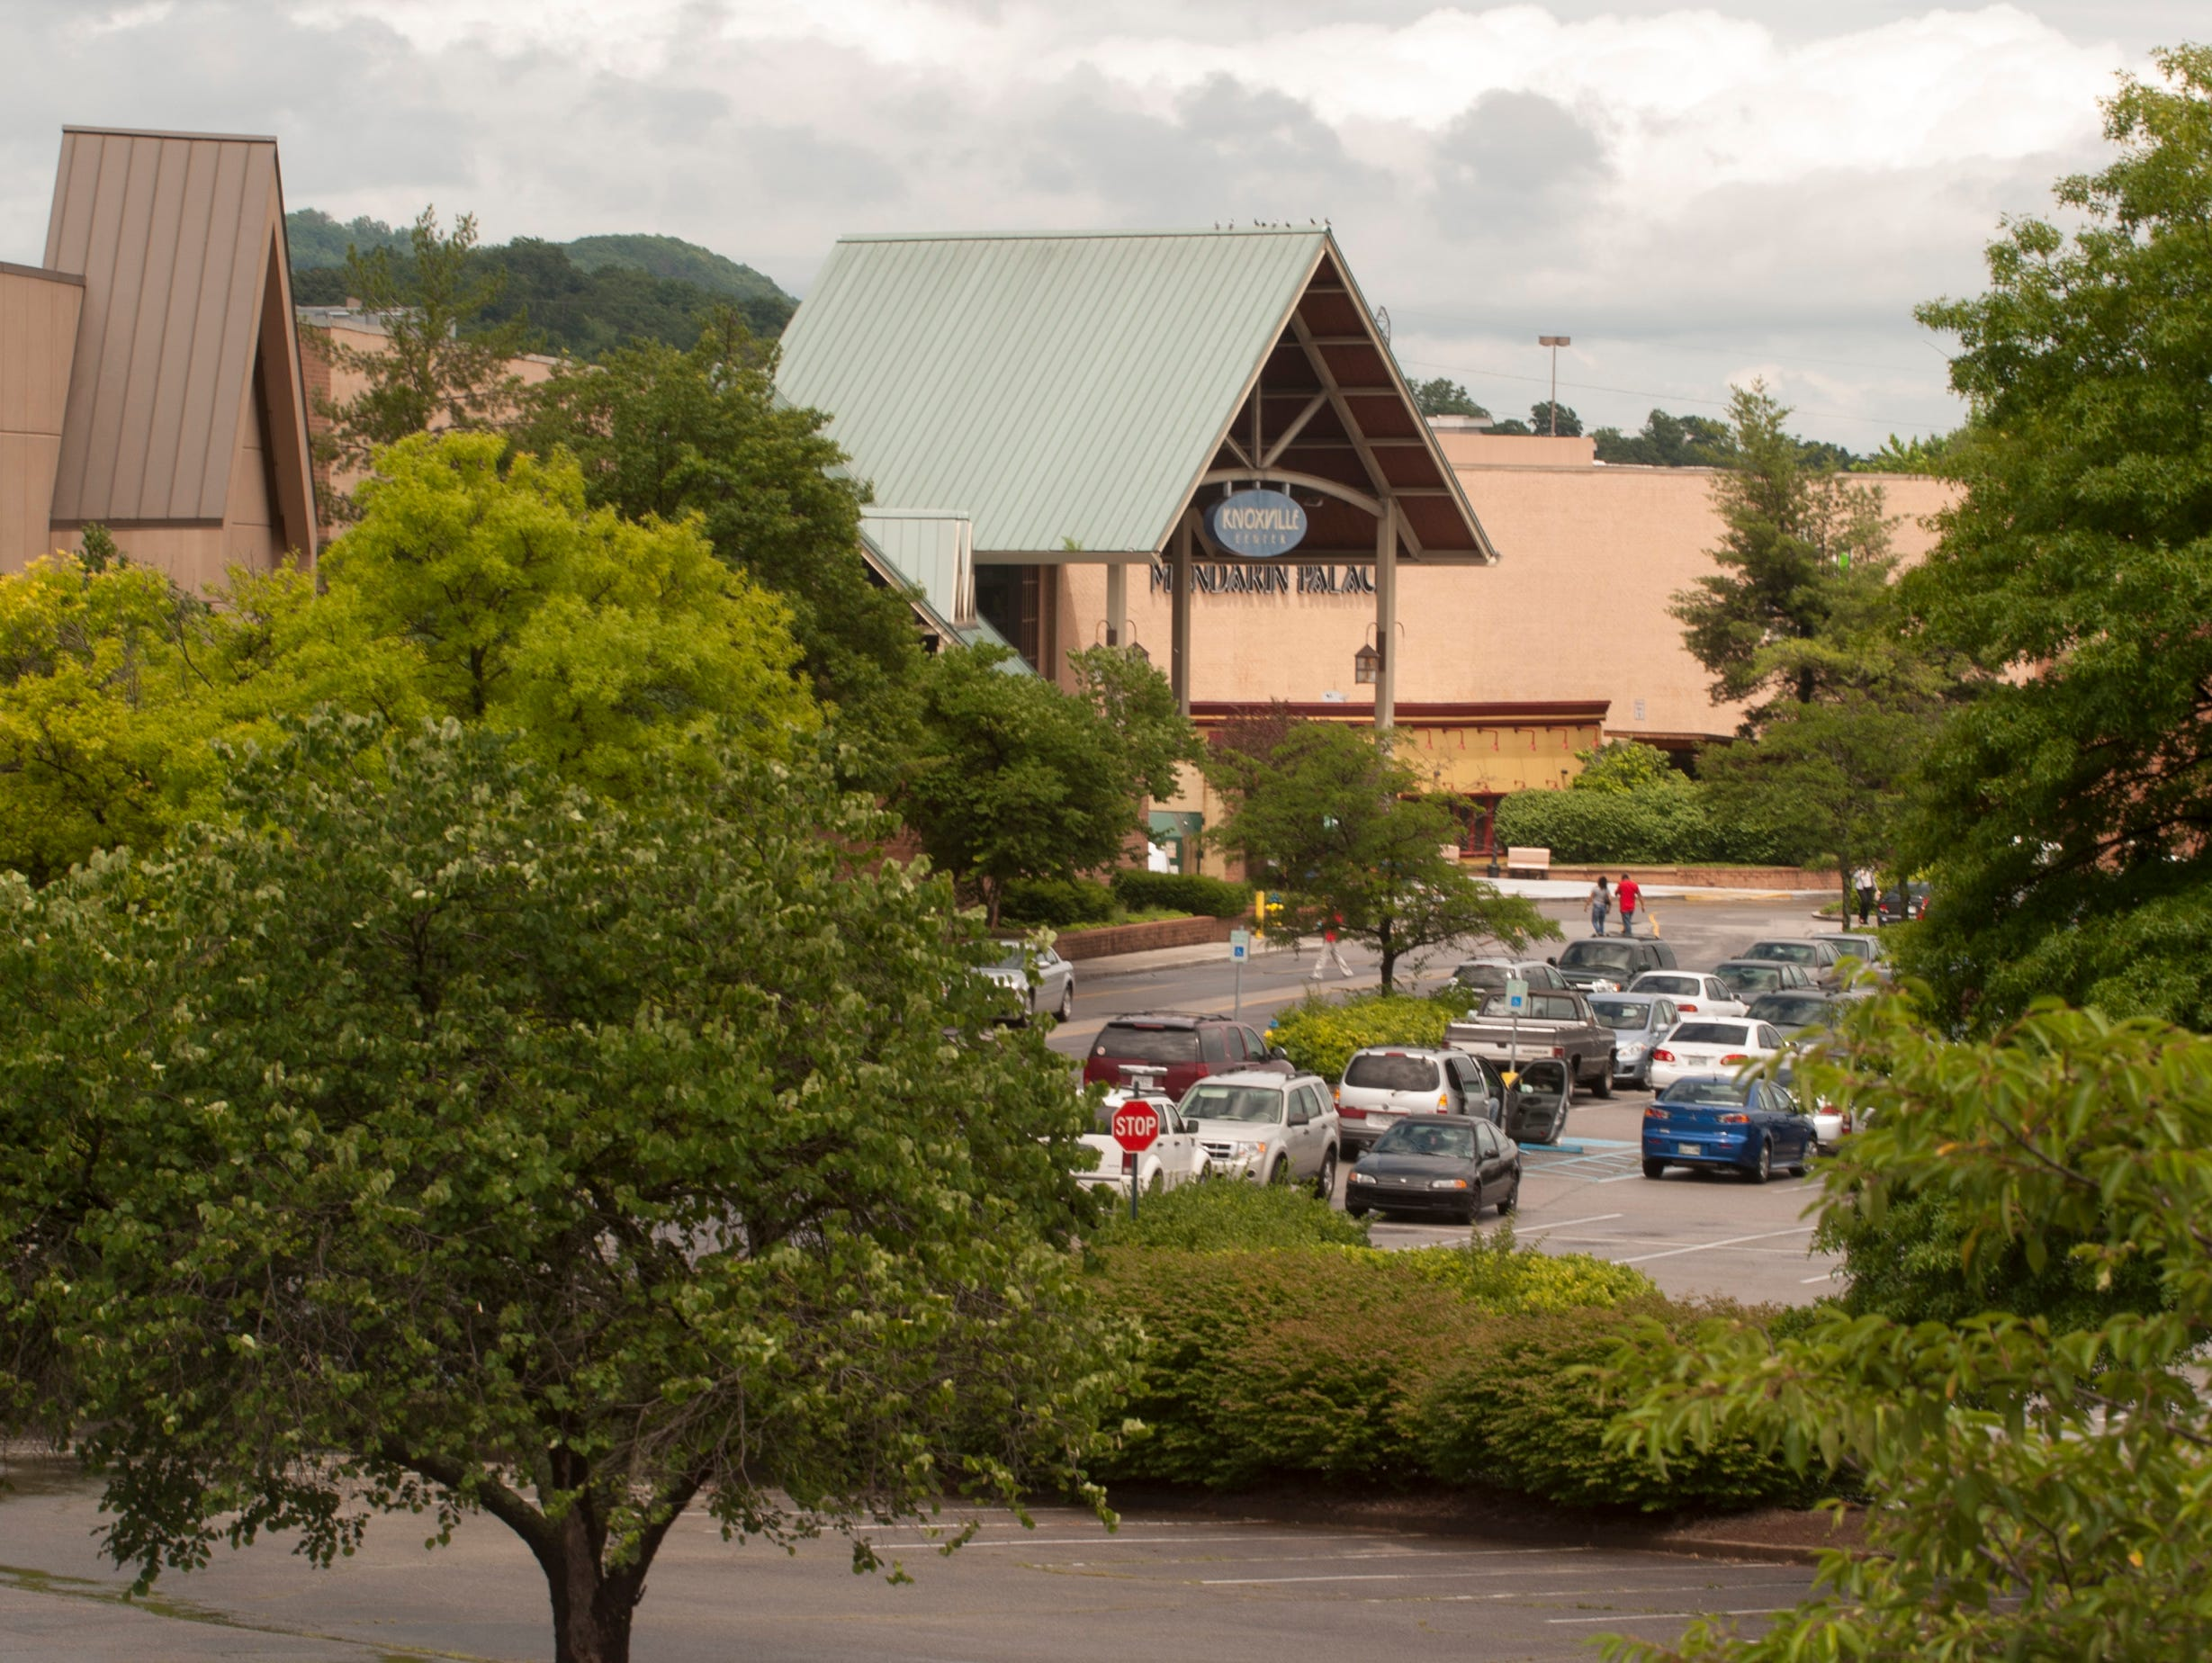 east town mall knoxville tn » Full HD MAPS Locations - Another World ...